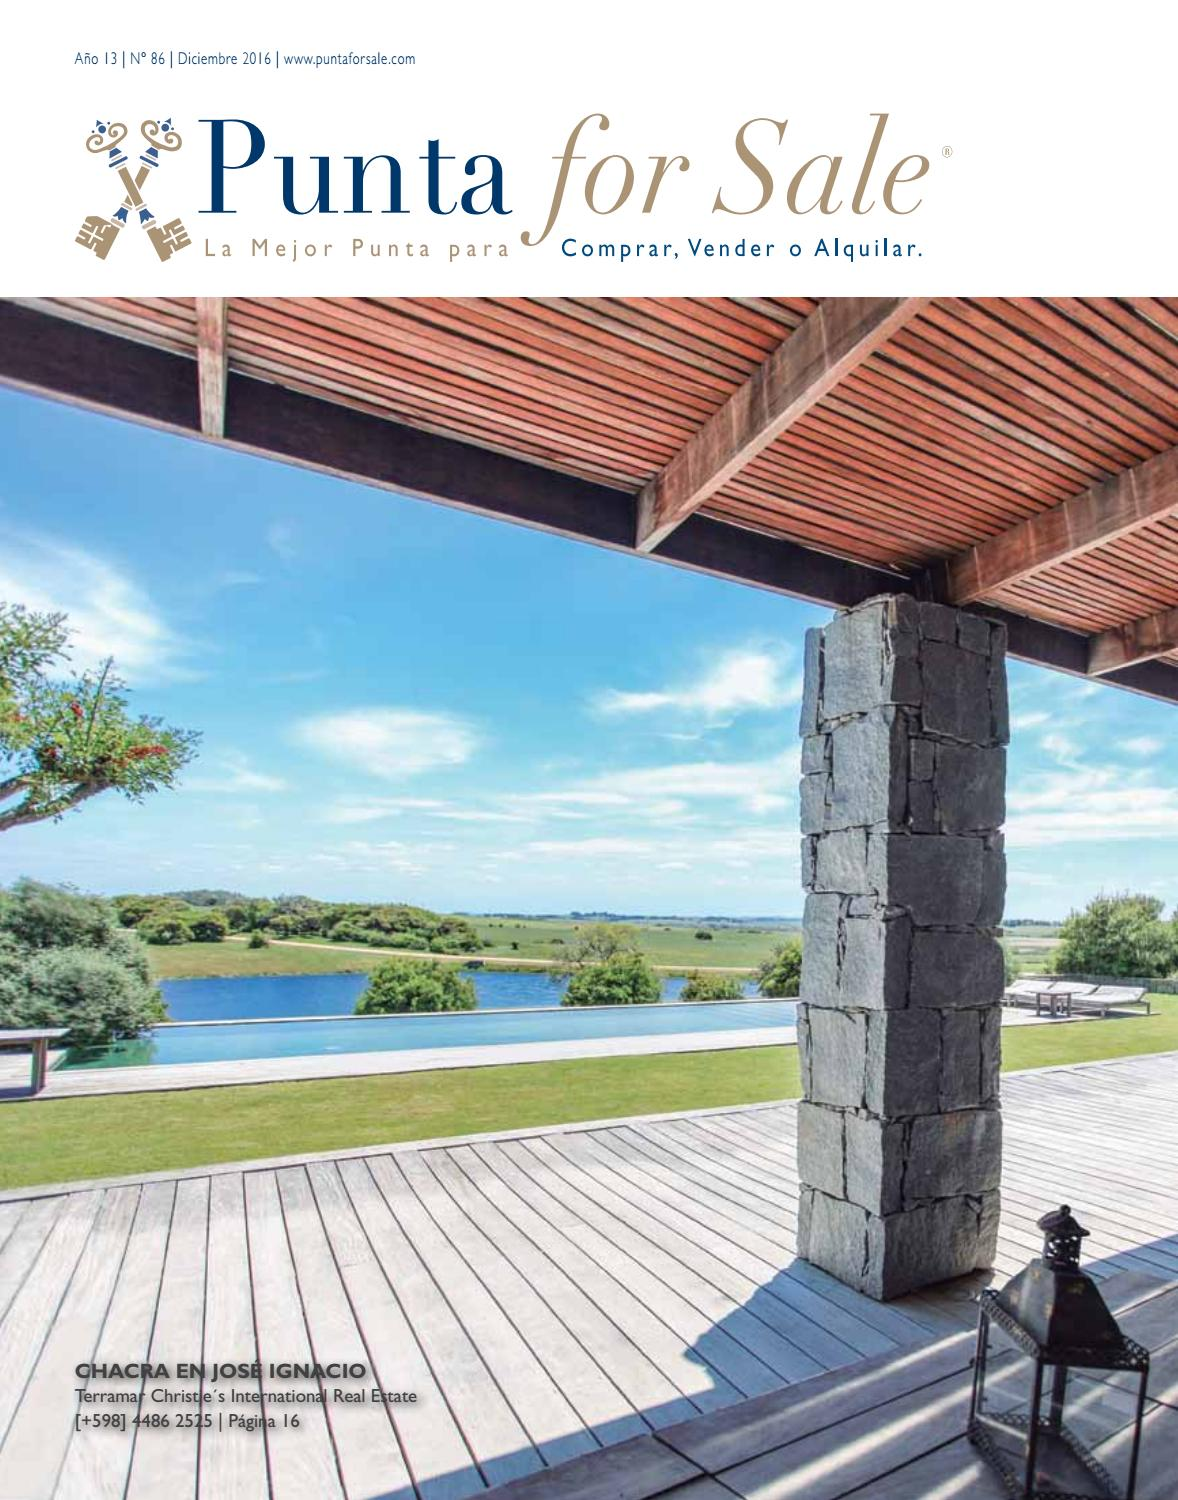 Revista de Real Estate Punta For Sale, edición # 86 Diciembre 2016